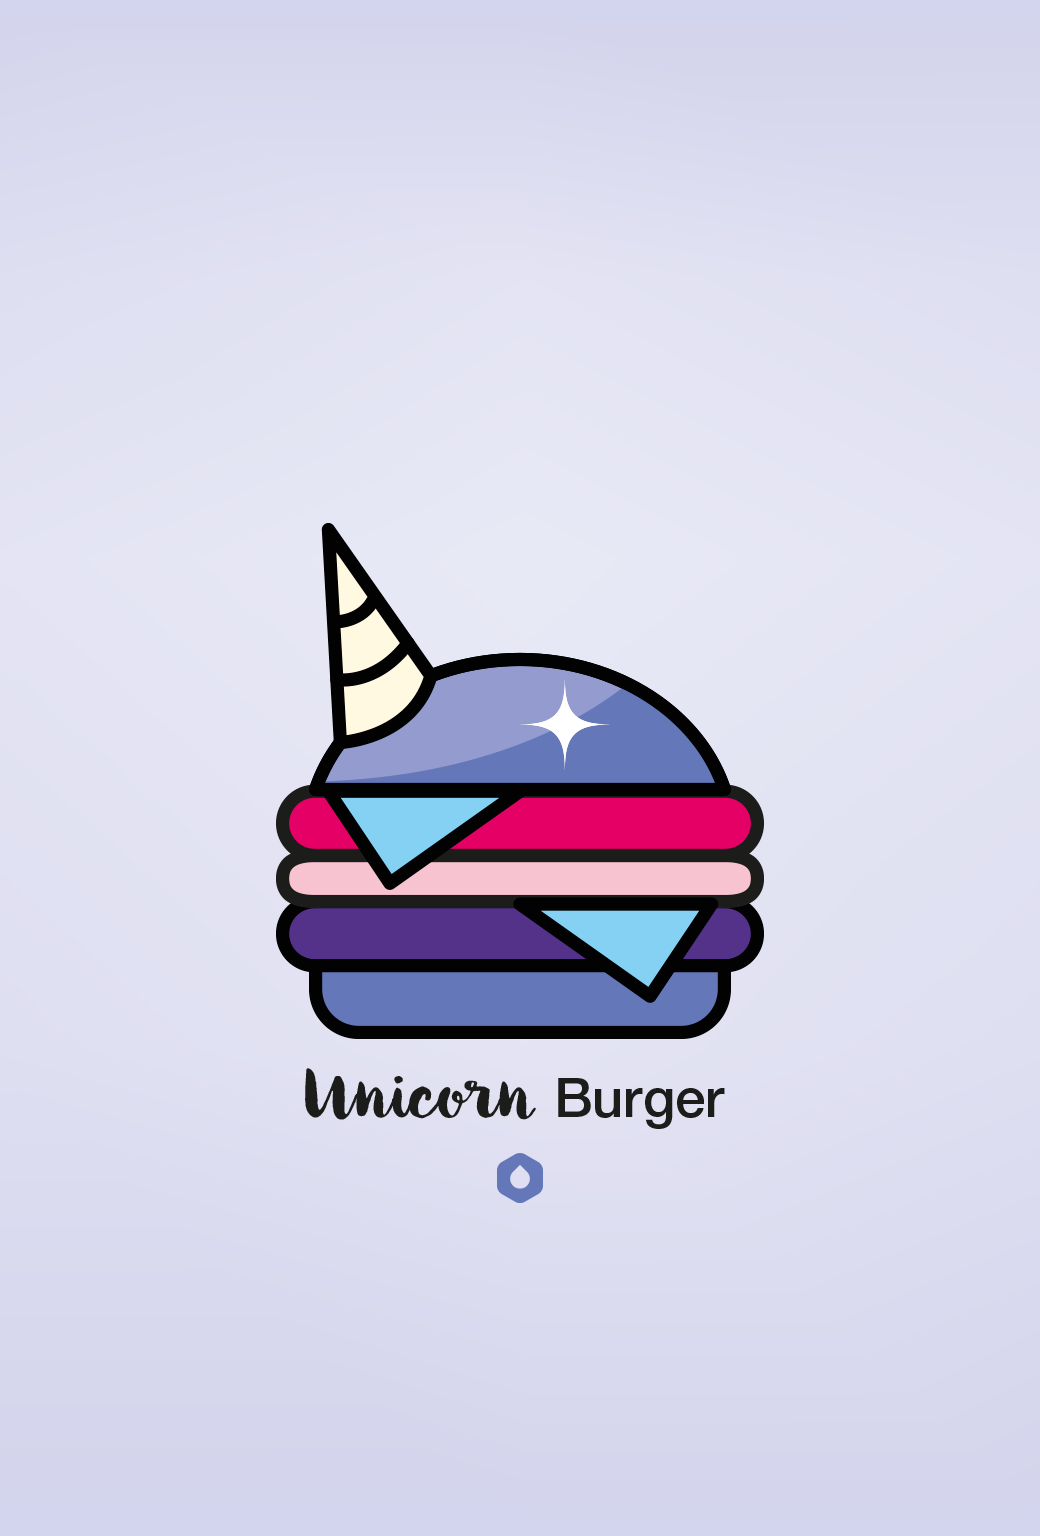 Wallpaper Pick Your Burger - iPhone5 - Unicorn